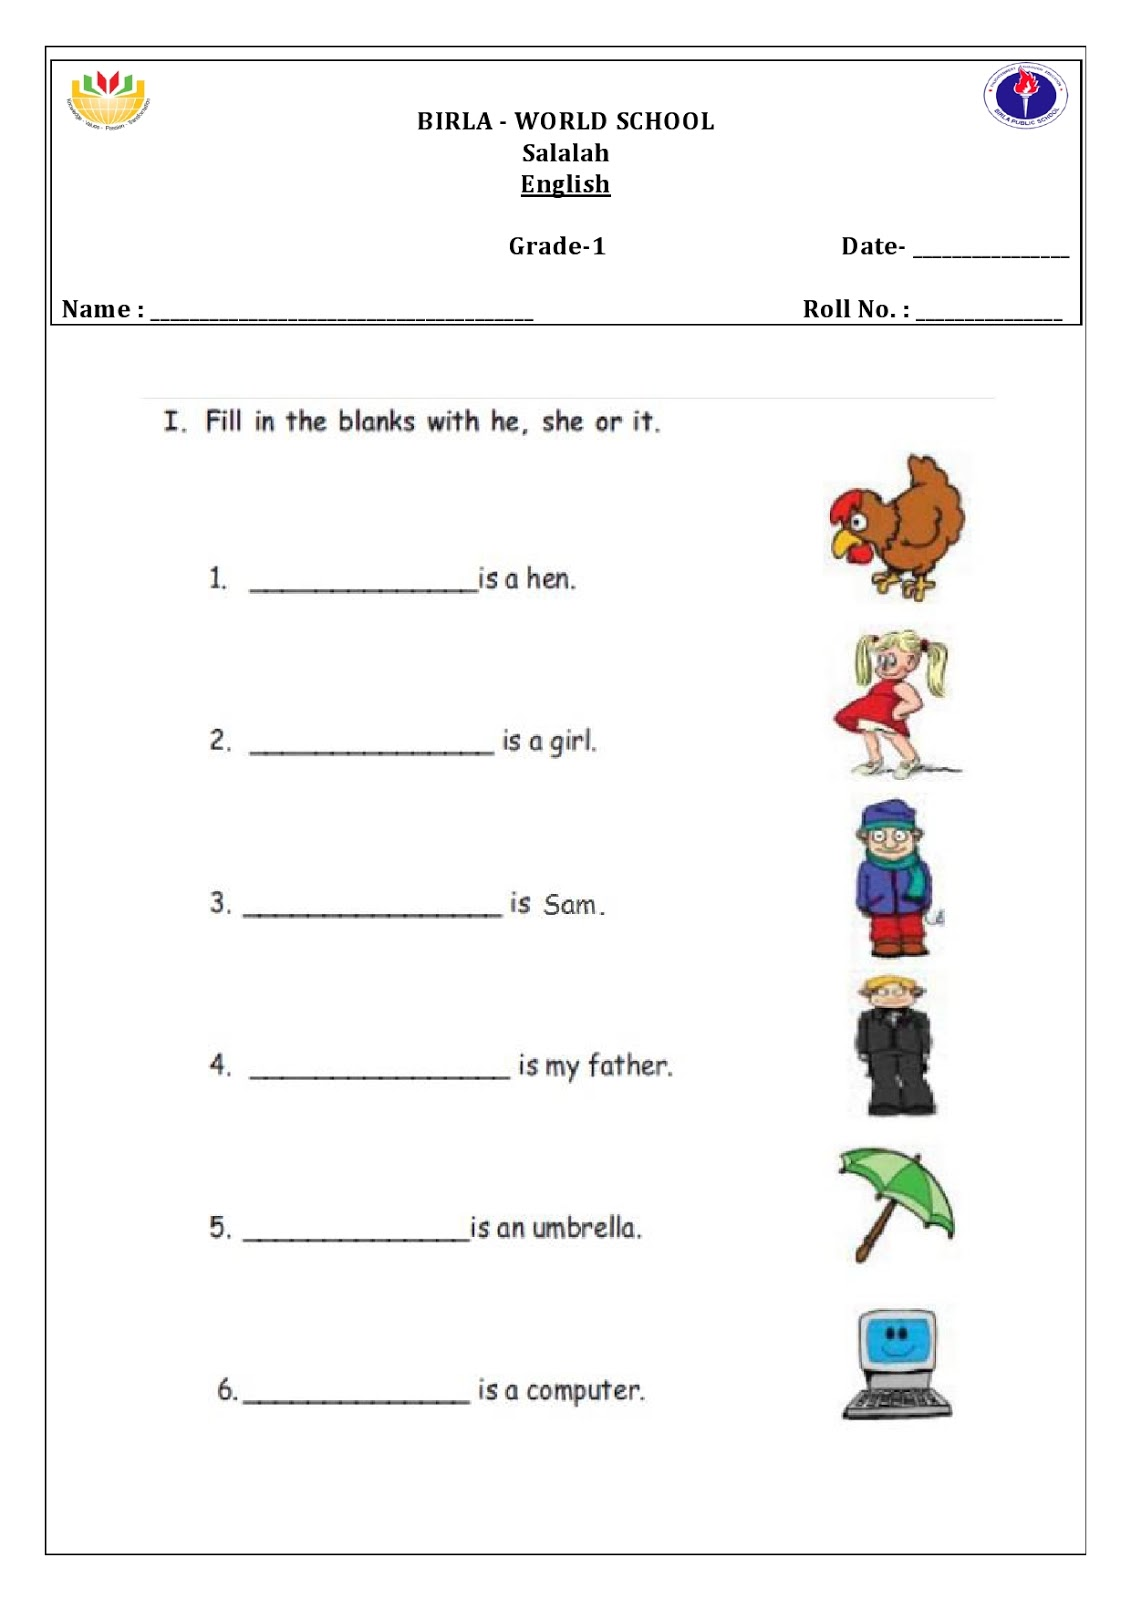 Birla World School Oman Homework For Grade 1b On 1 12 15